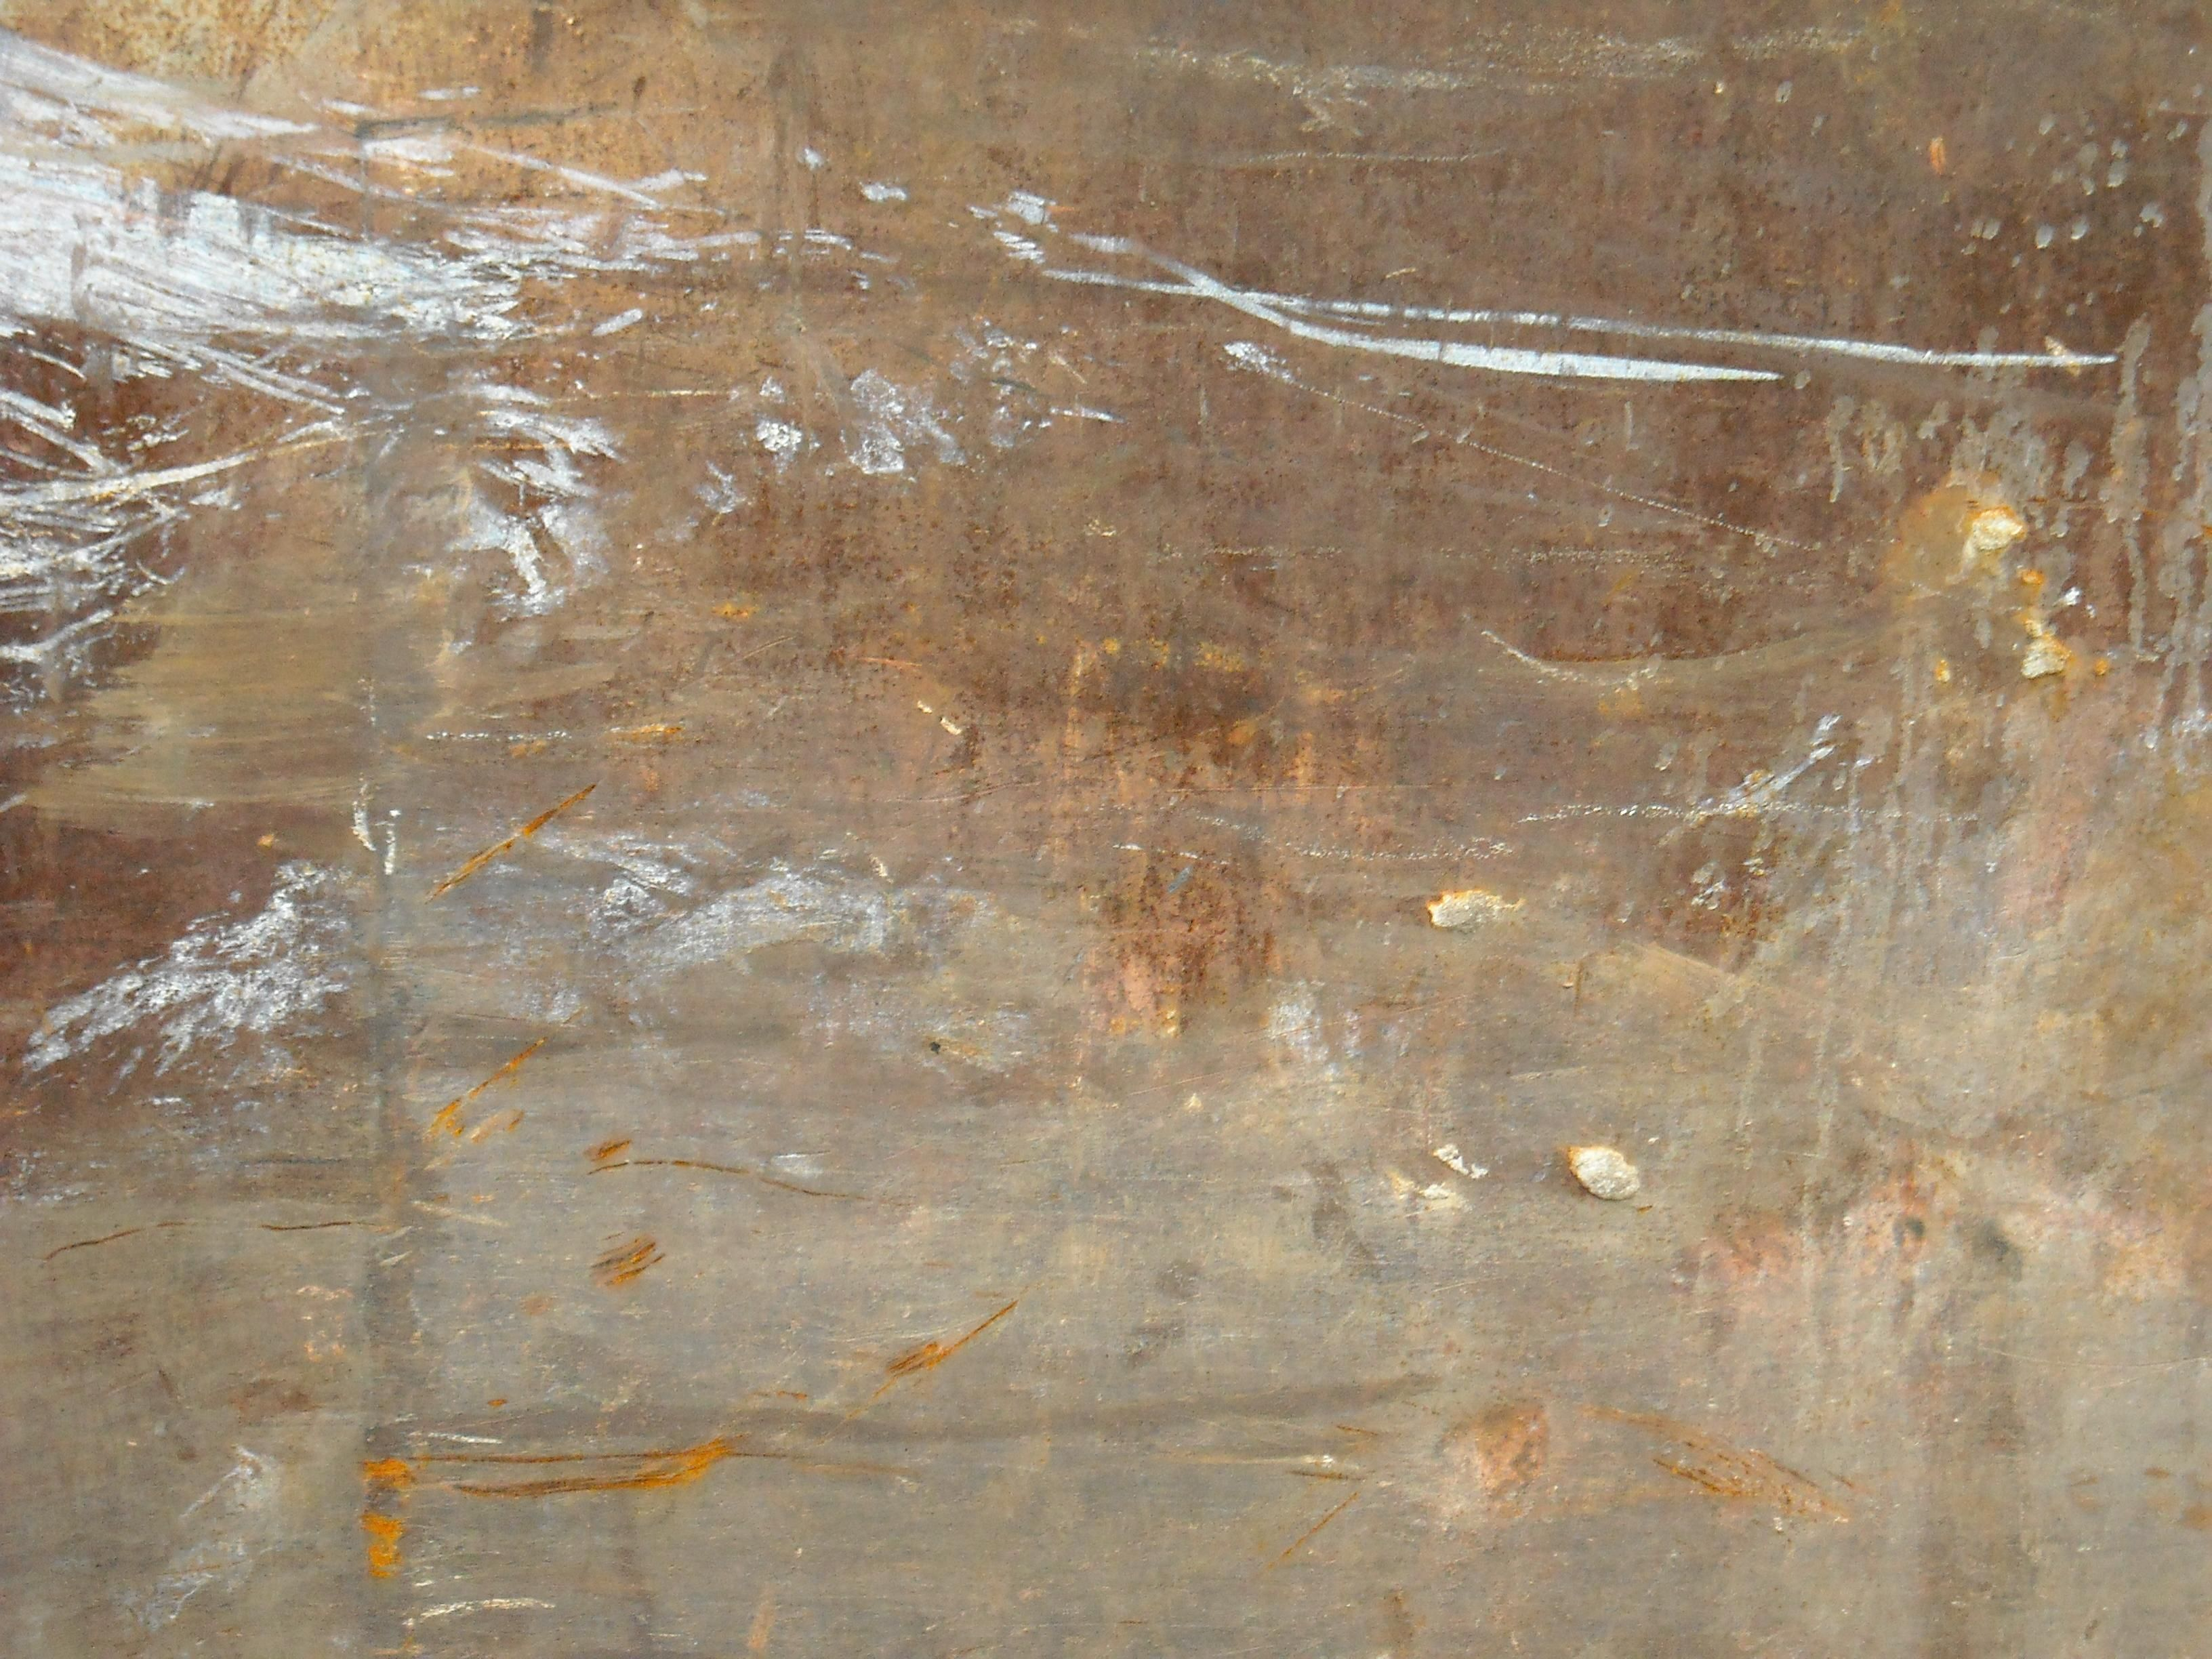 Free picture: rusted metal, texture